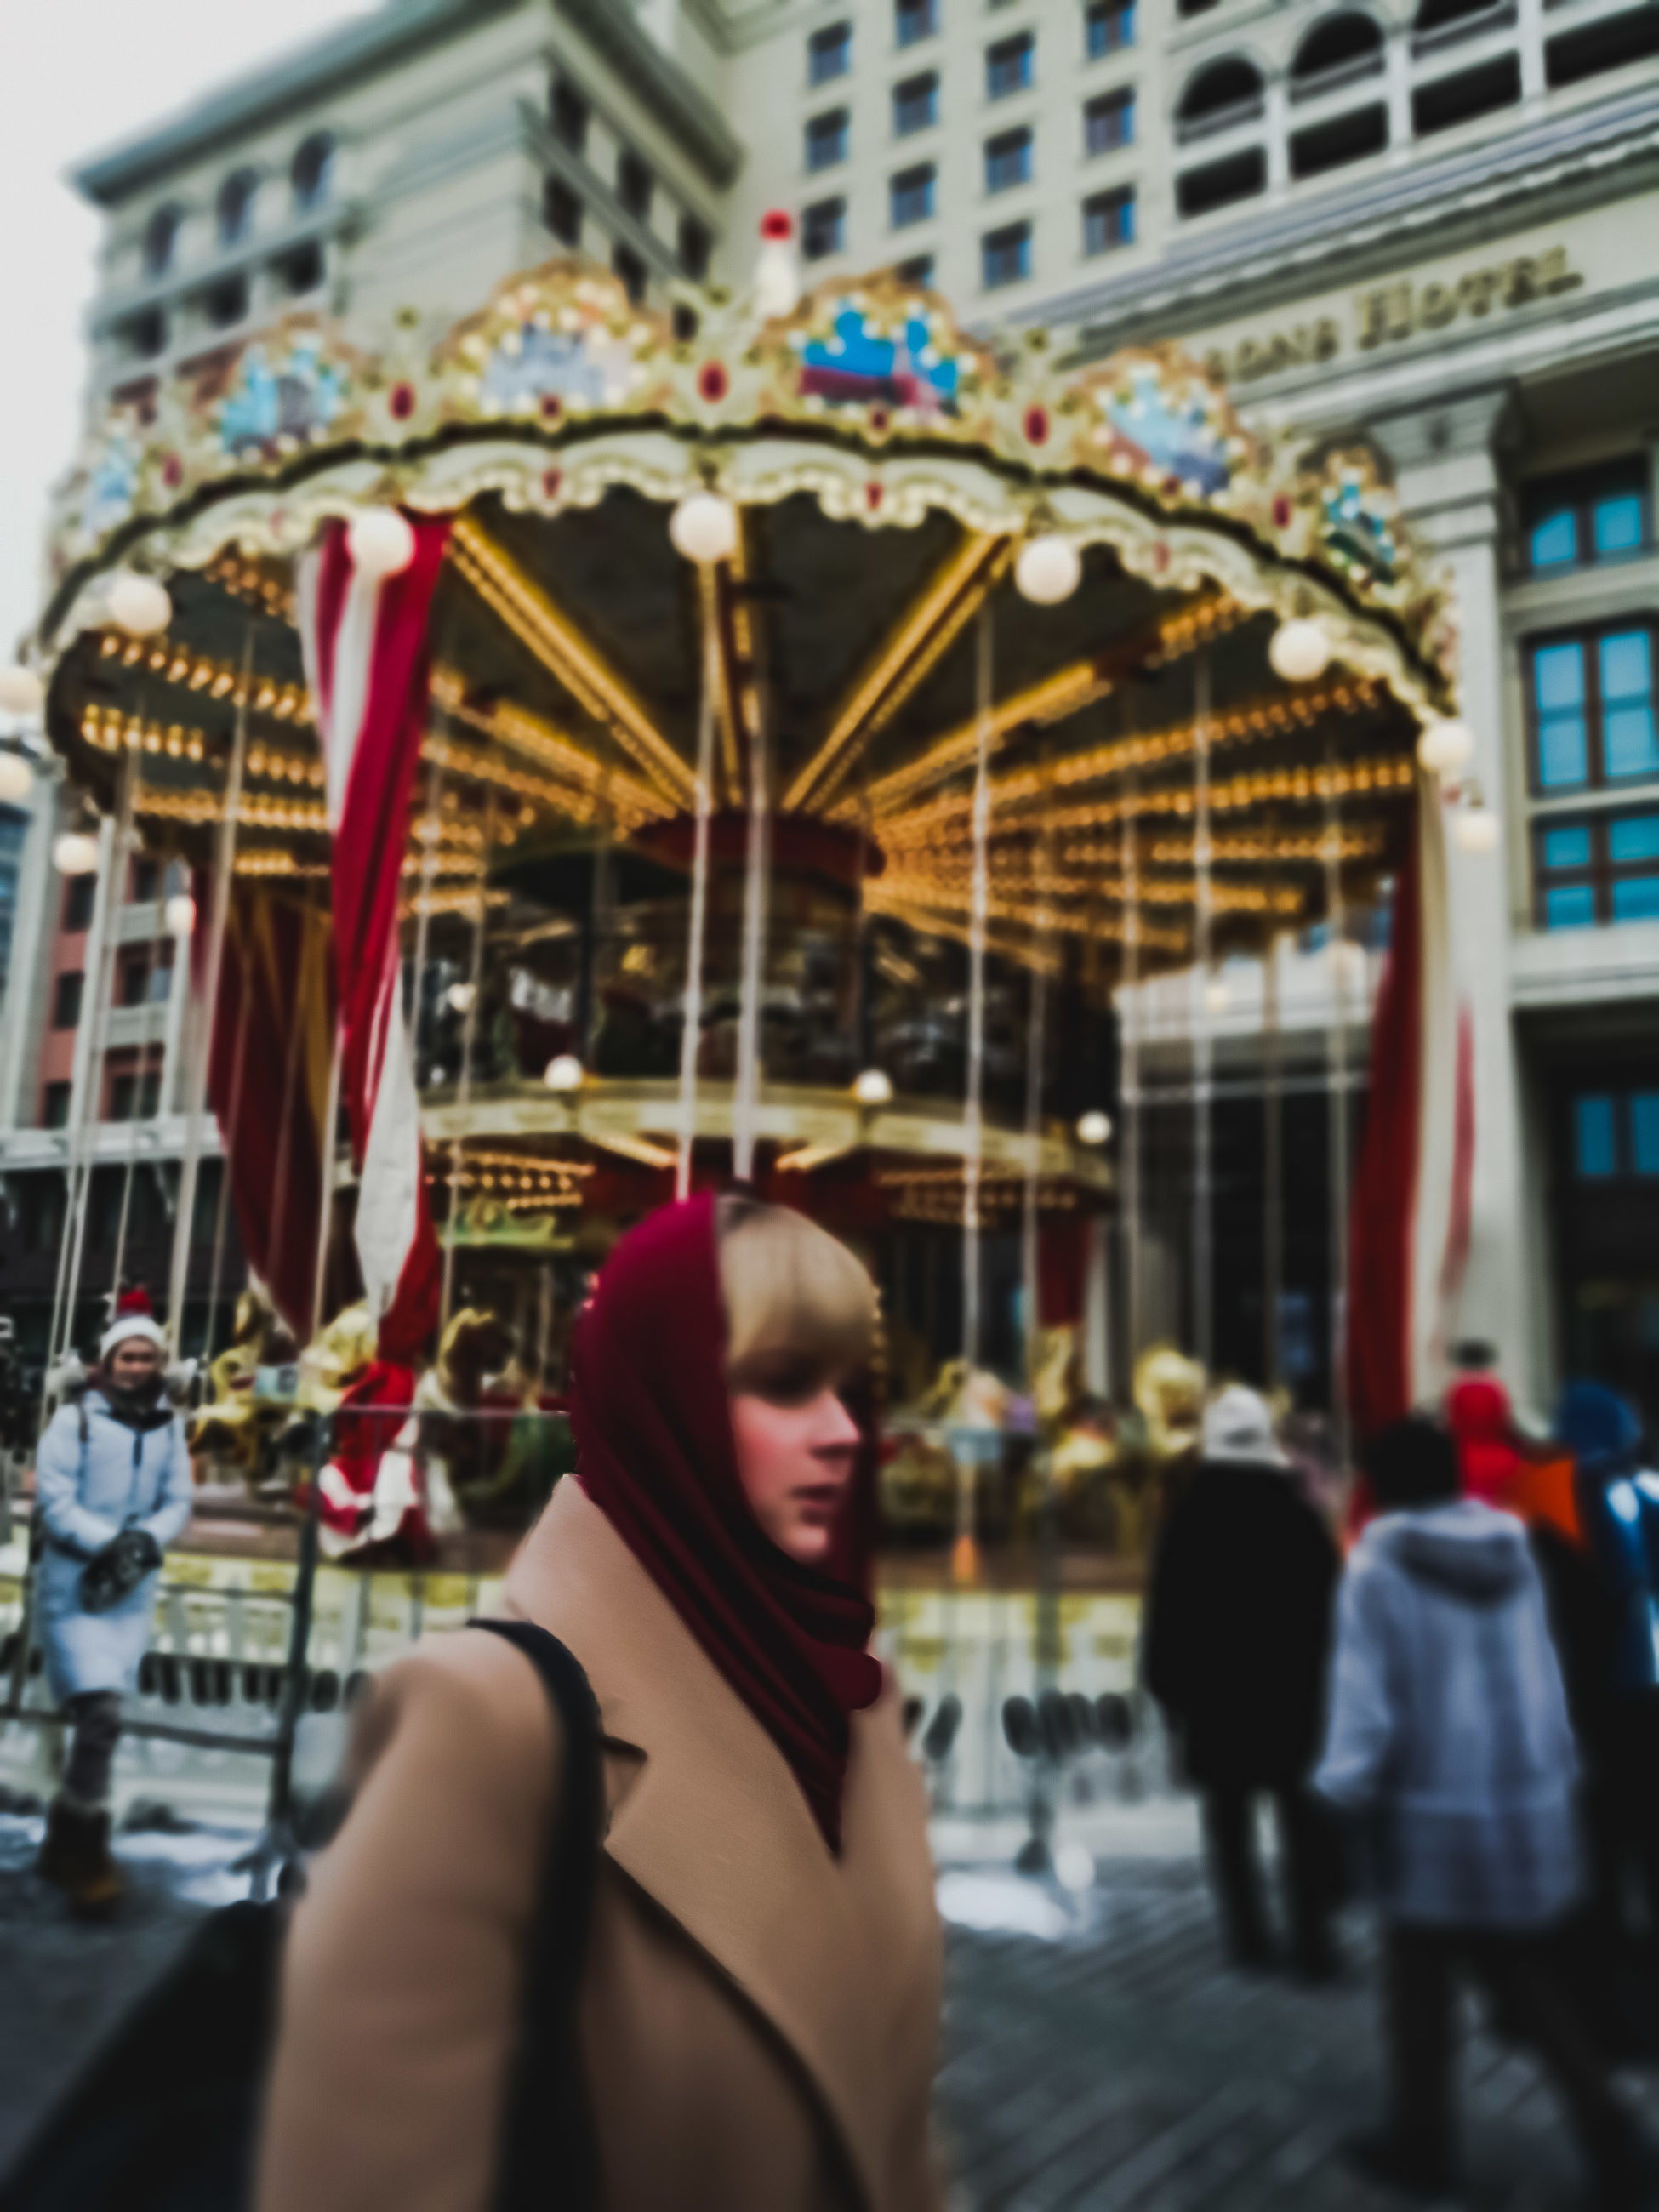 building exterior, architecture, built structure, real people, lifestyles, leisure activity, women, one person, city, day, incidental people, city life, street, adult, clothing, young adult, amusement park, outdoors, young women, hairstyle